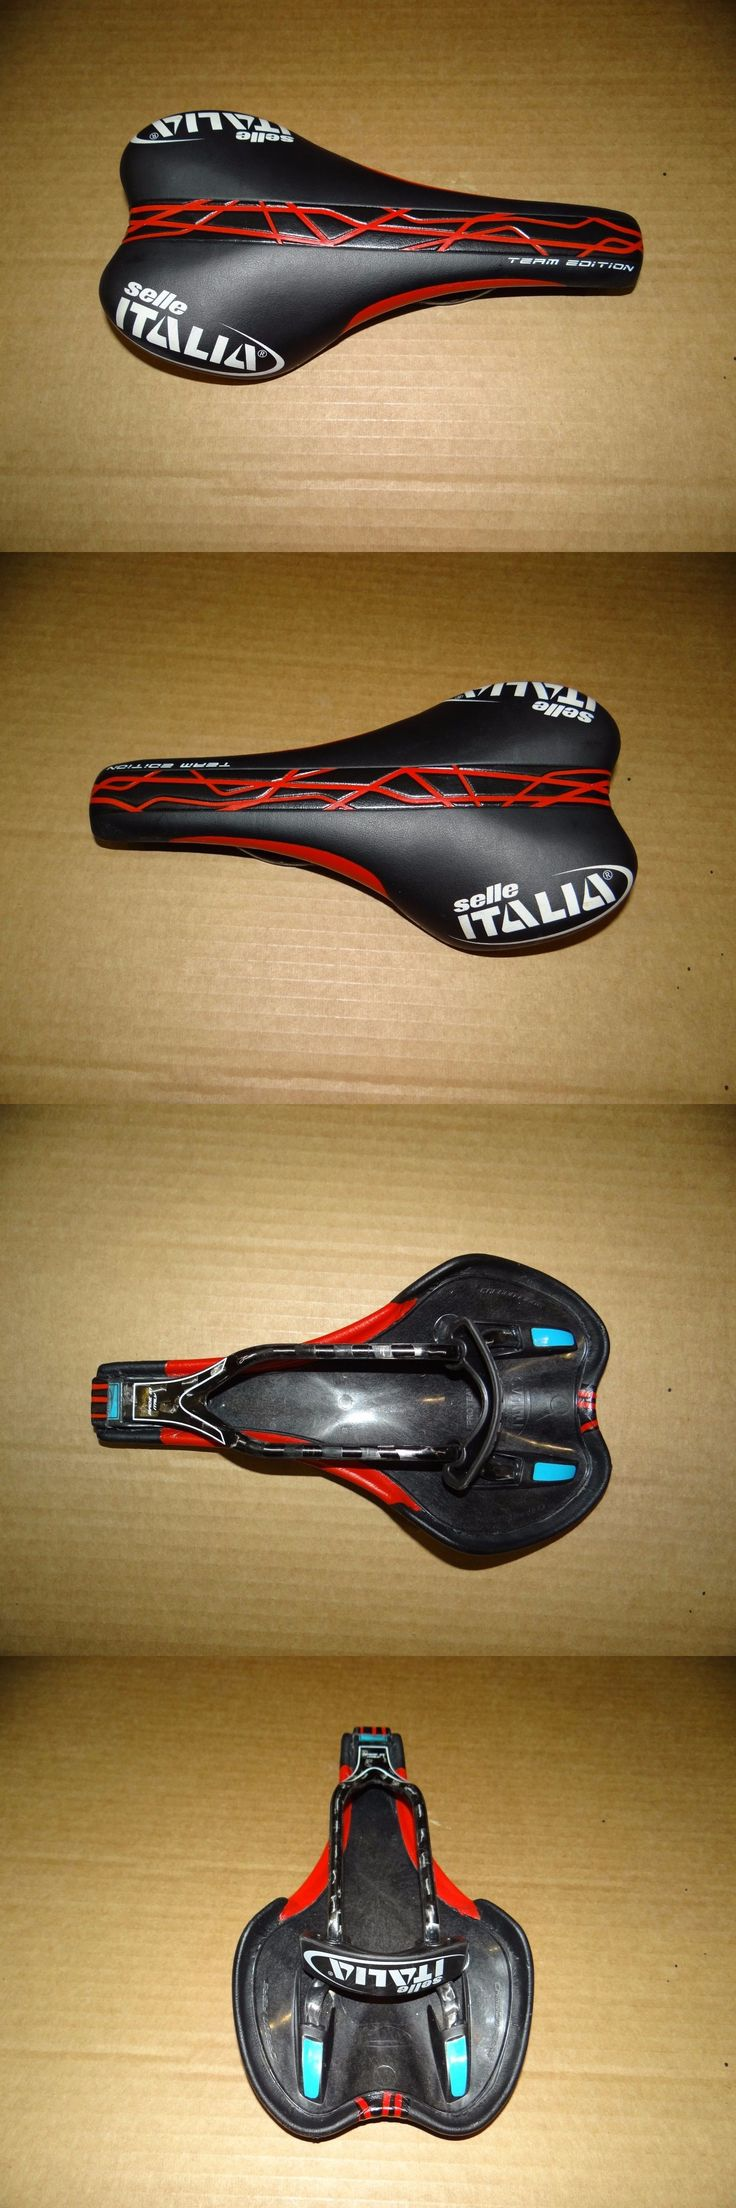 Saddle Covers Seat Covers 177838: Selle Italia Slr Team Edition Carbon Raill Tt Saddle, Lorica Suface -> BUY IT NOW ONLY: $99.99 on eBay!